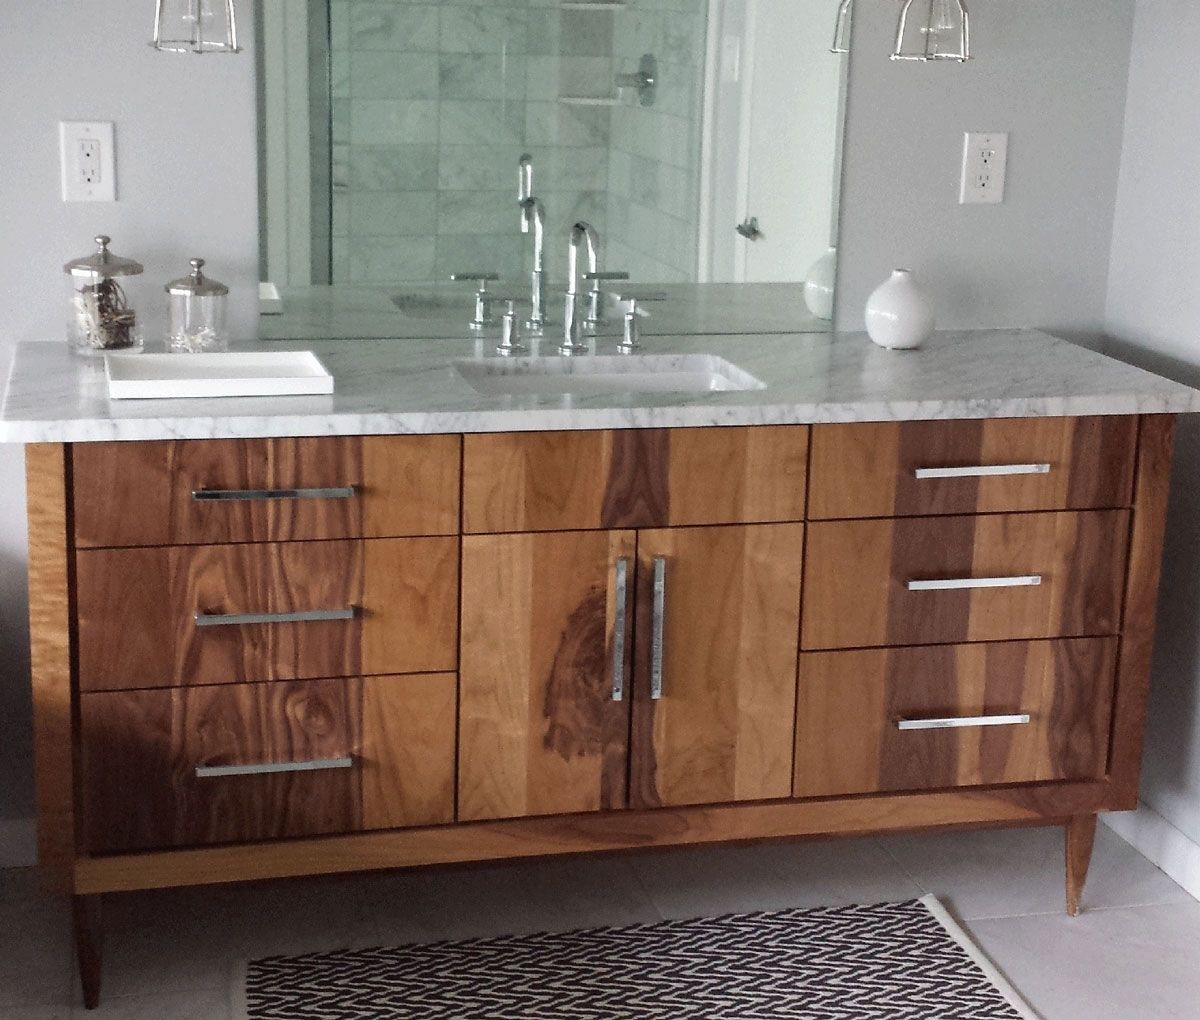 Handmade custom bathroom vanities by furniture by phoenix for Custom bathroom vanity cabinets